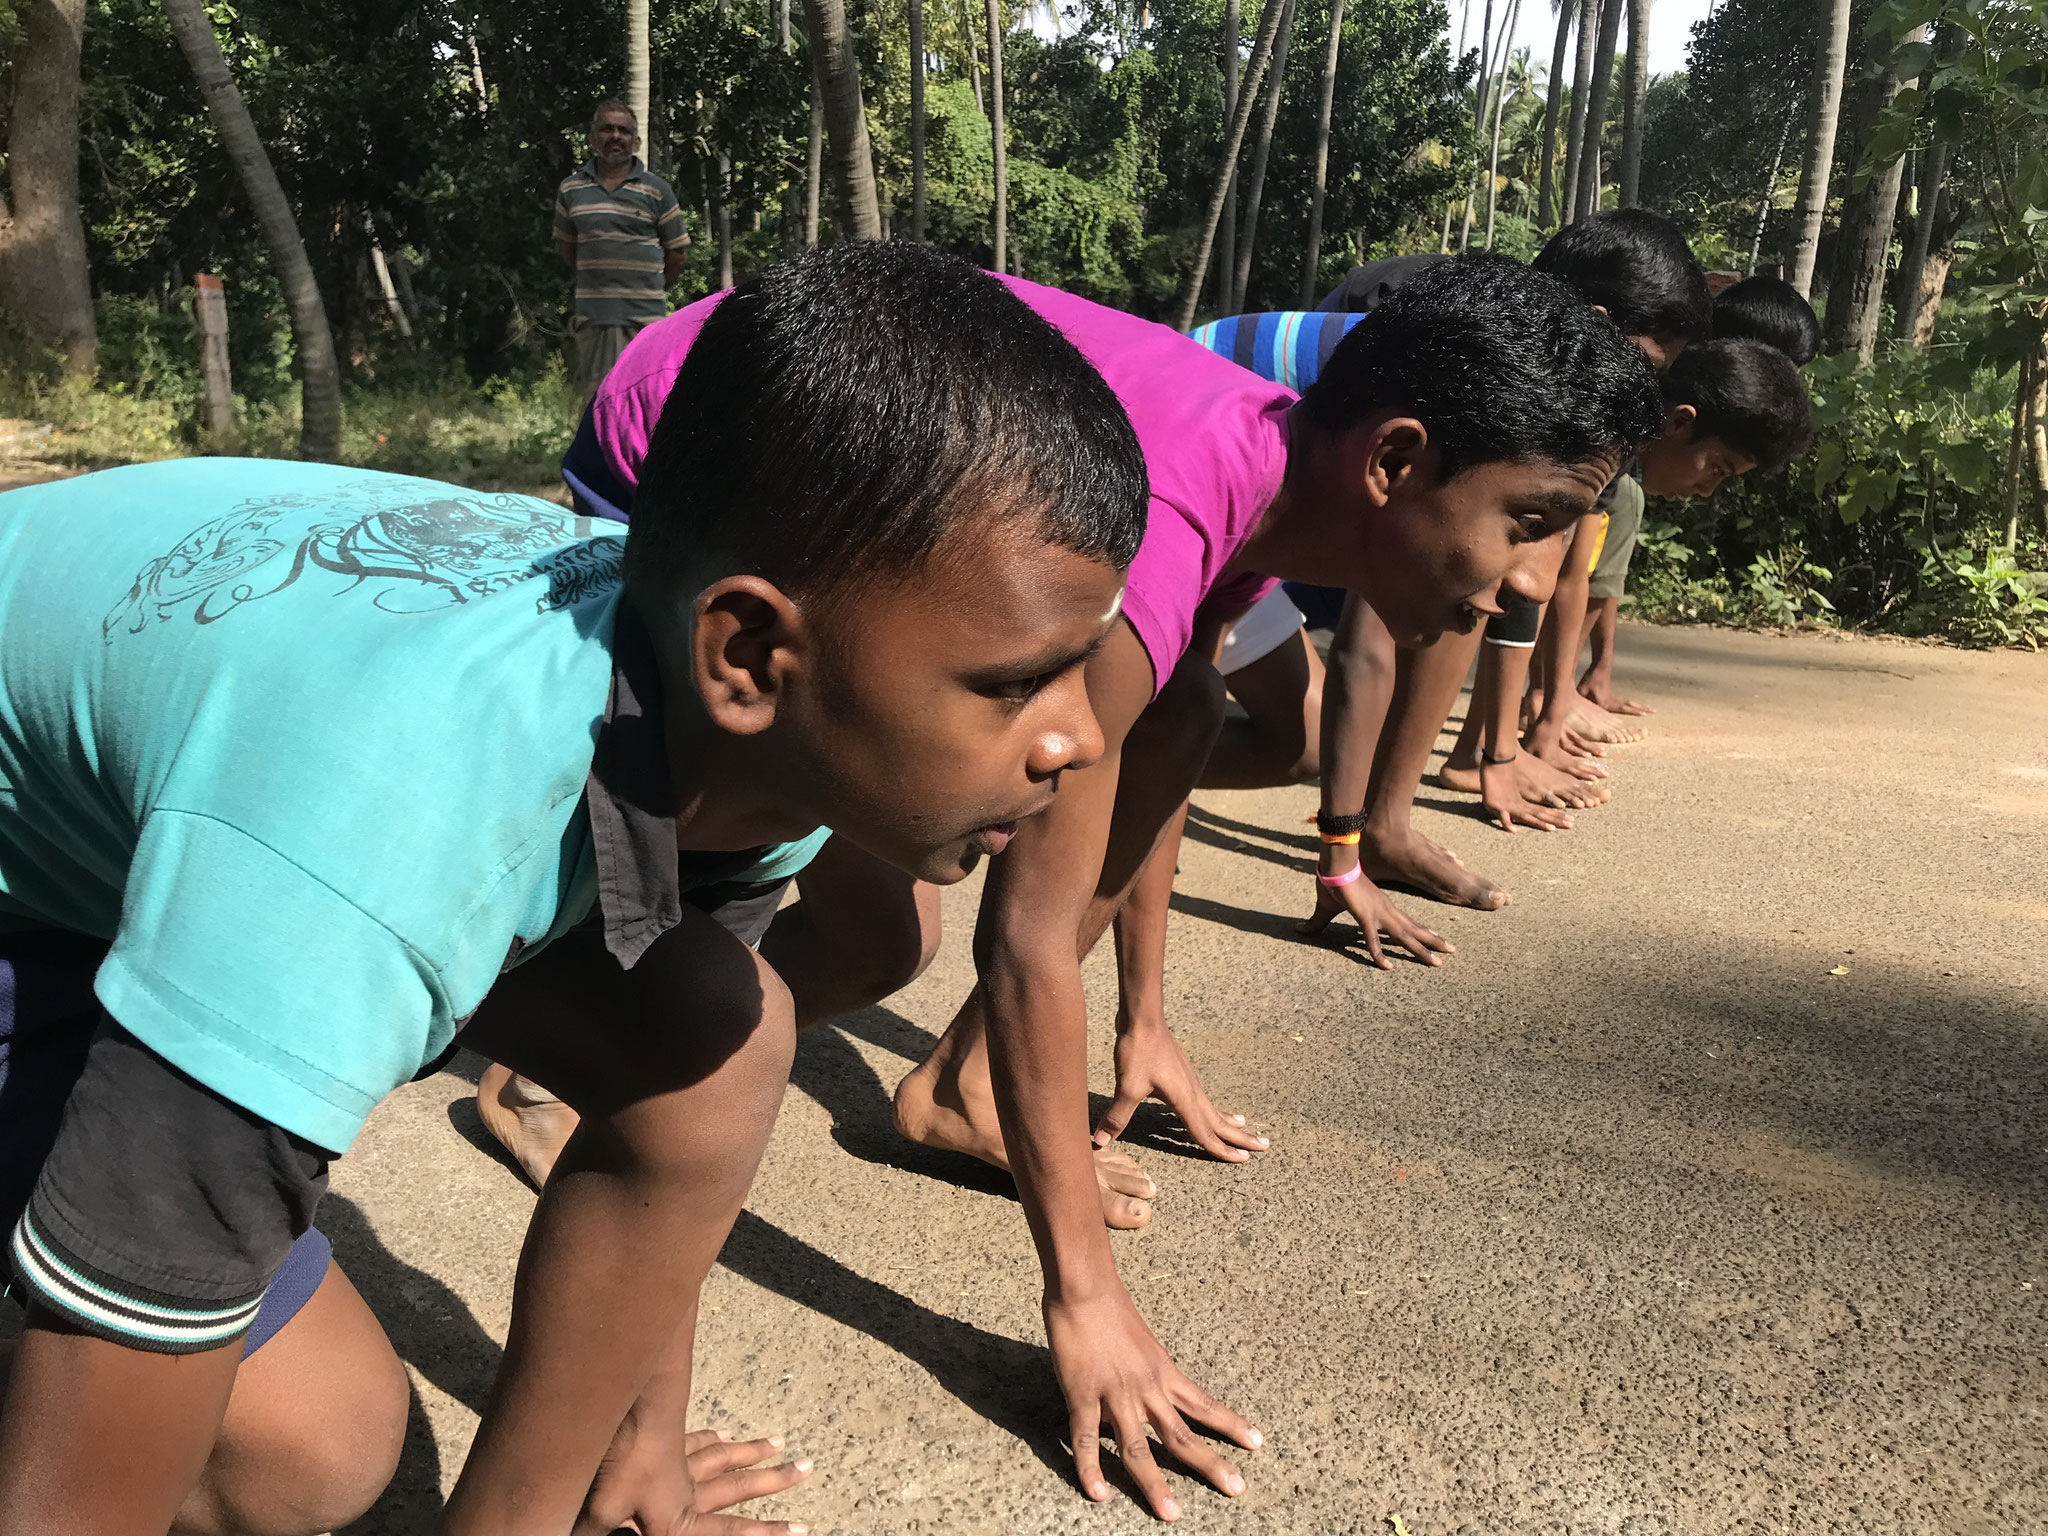 Running races for all age groups for boys and girls separately